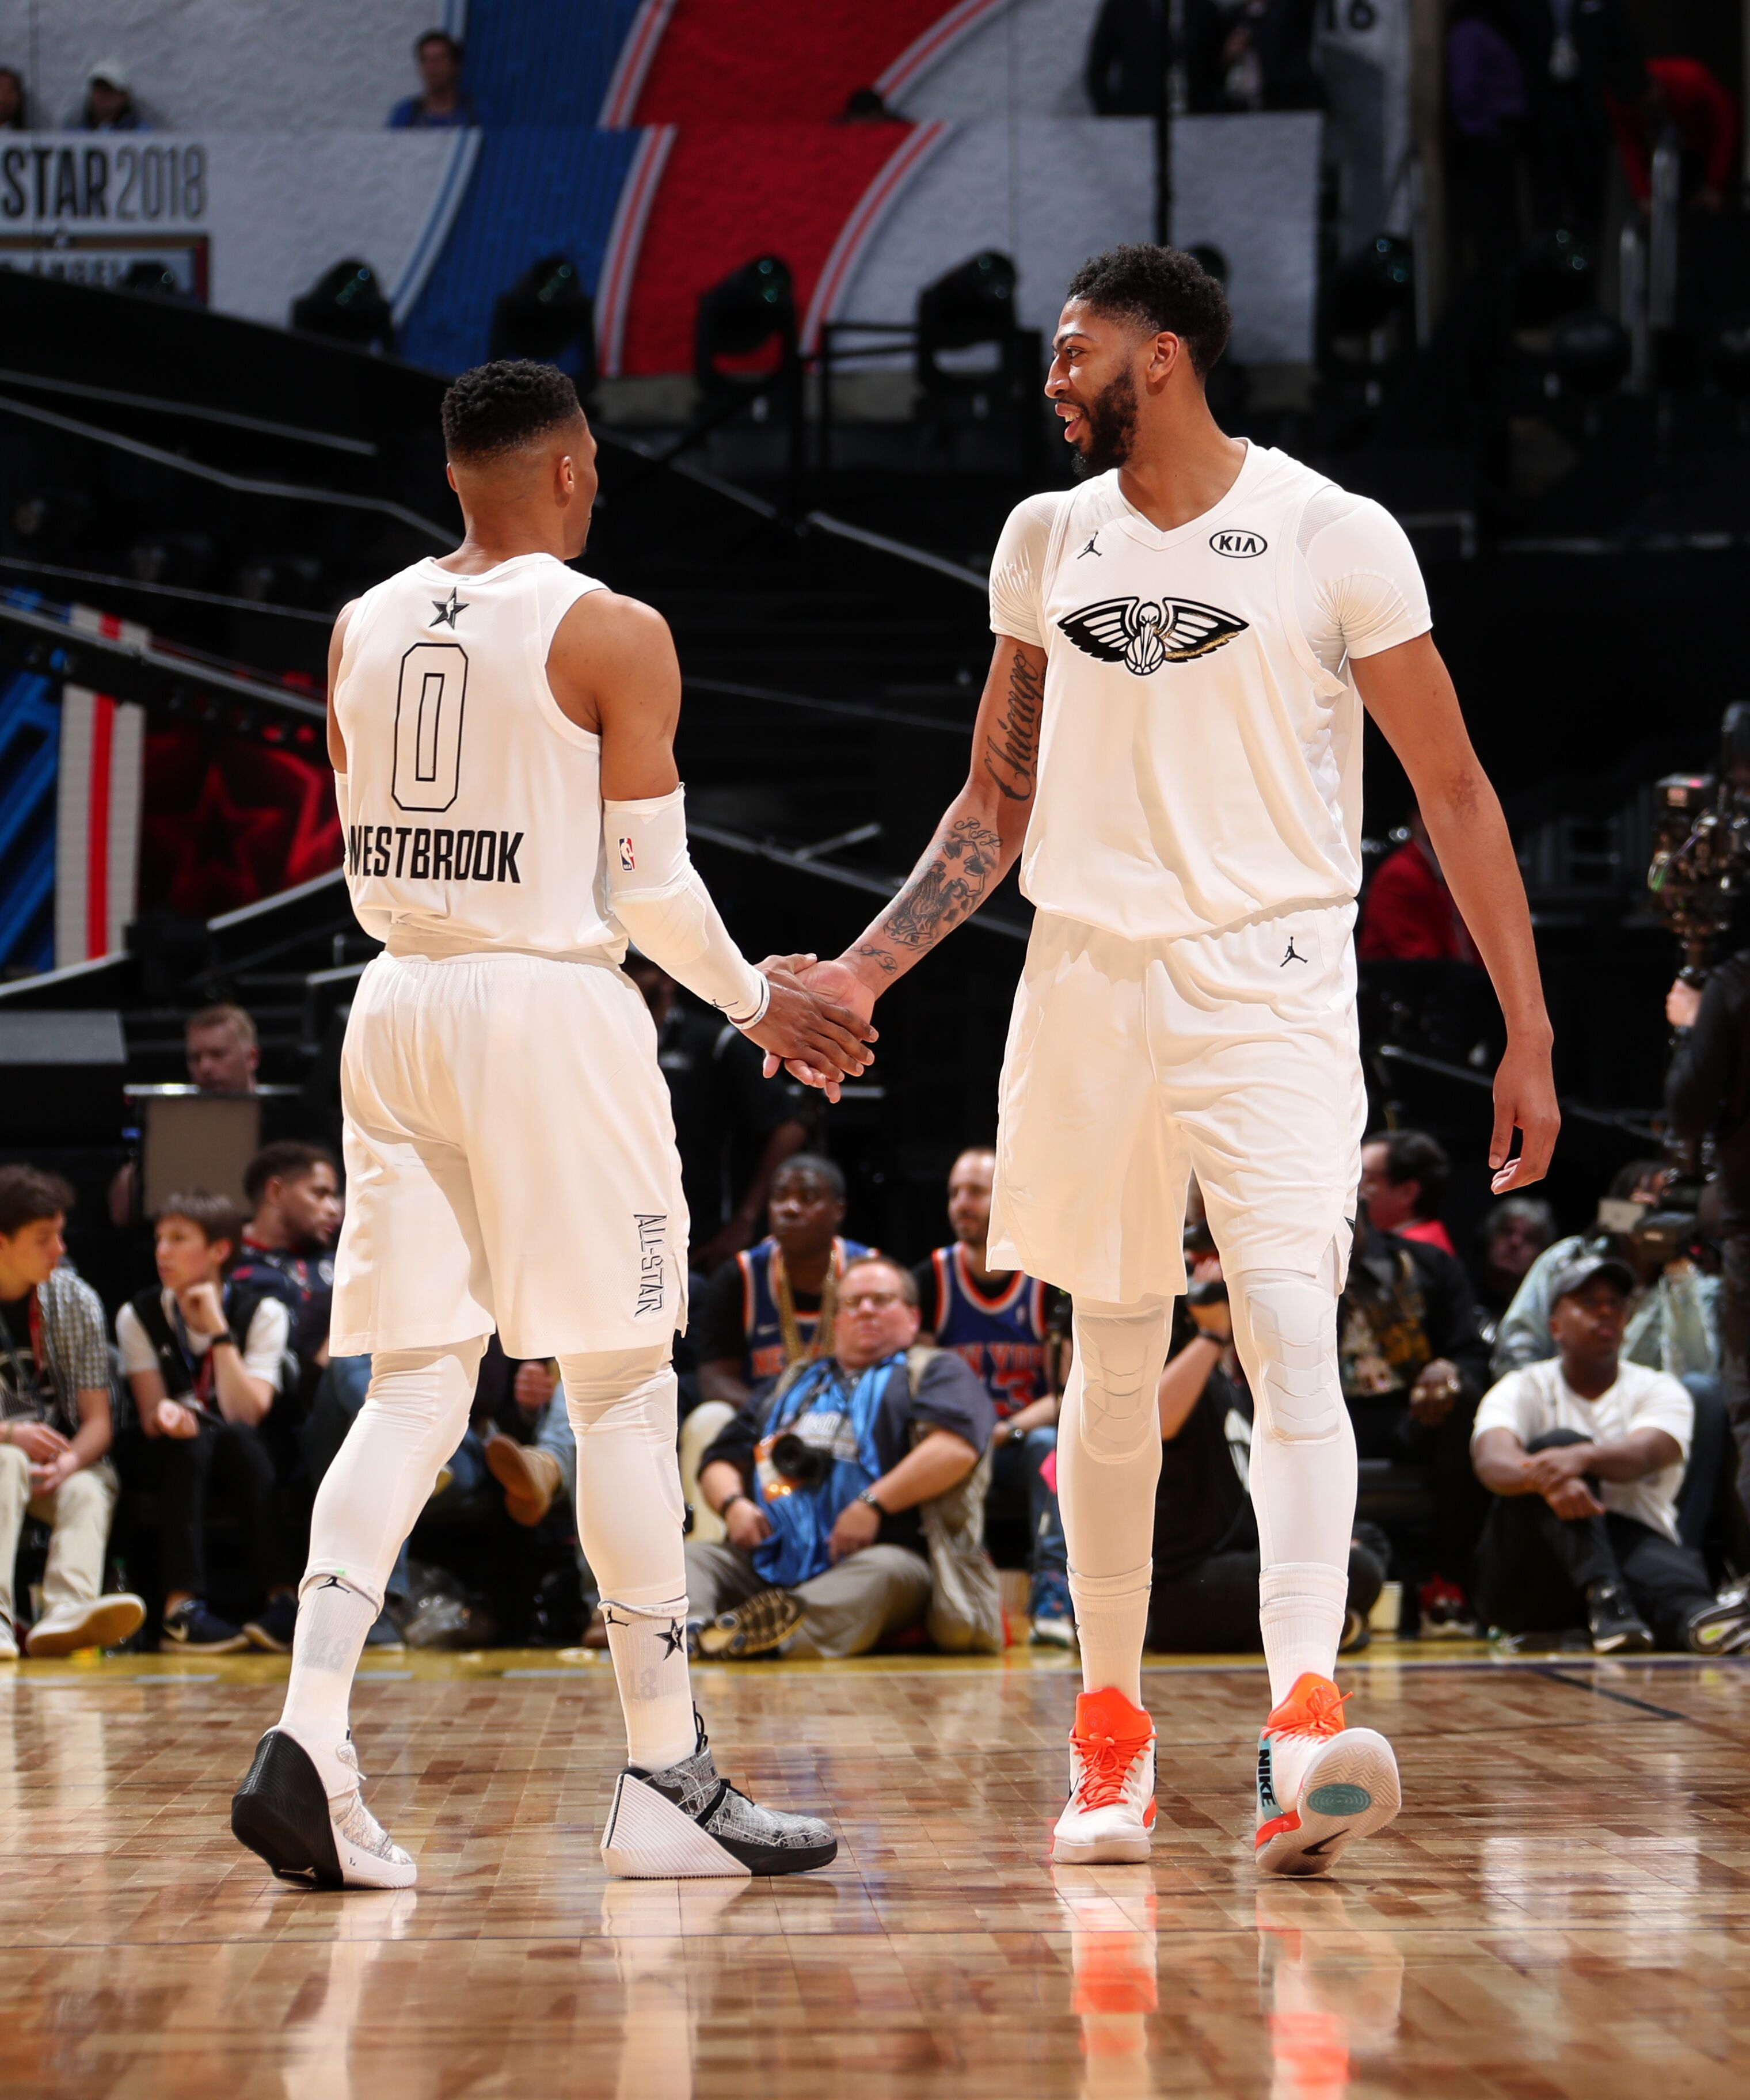 920295494-2018-nba-all-star-game.jpg